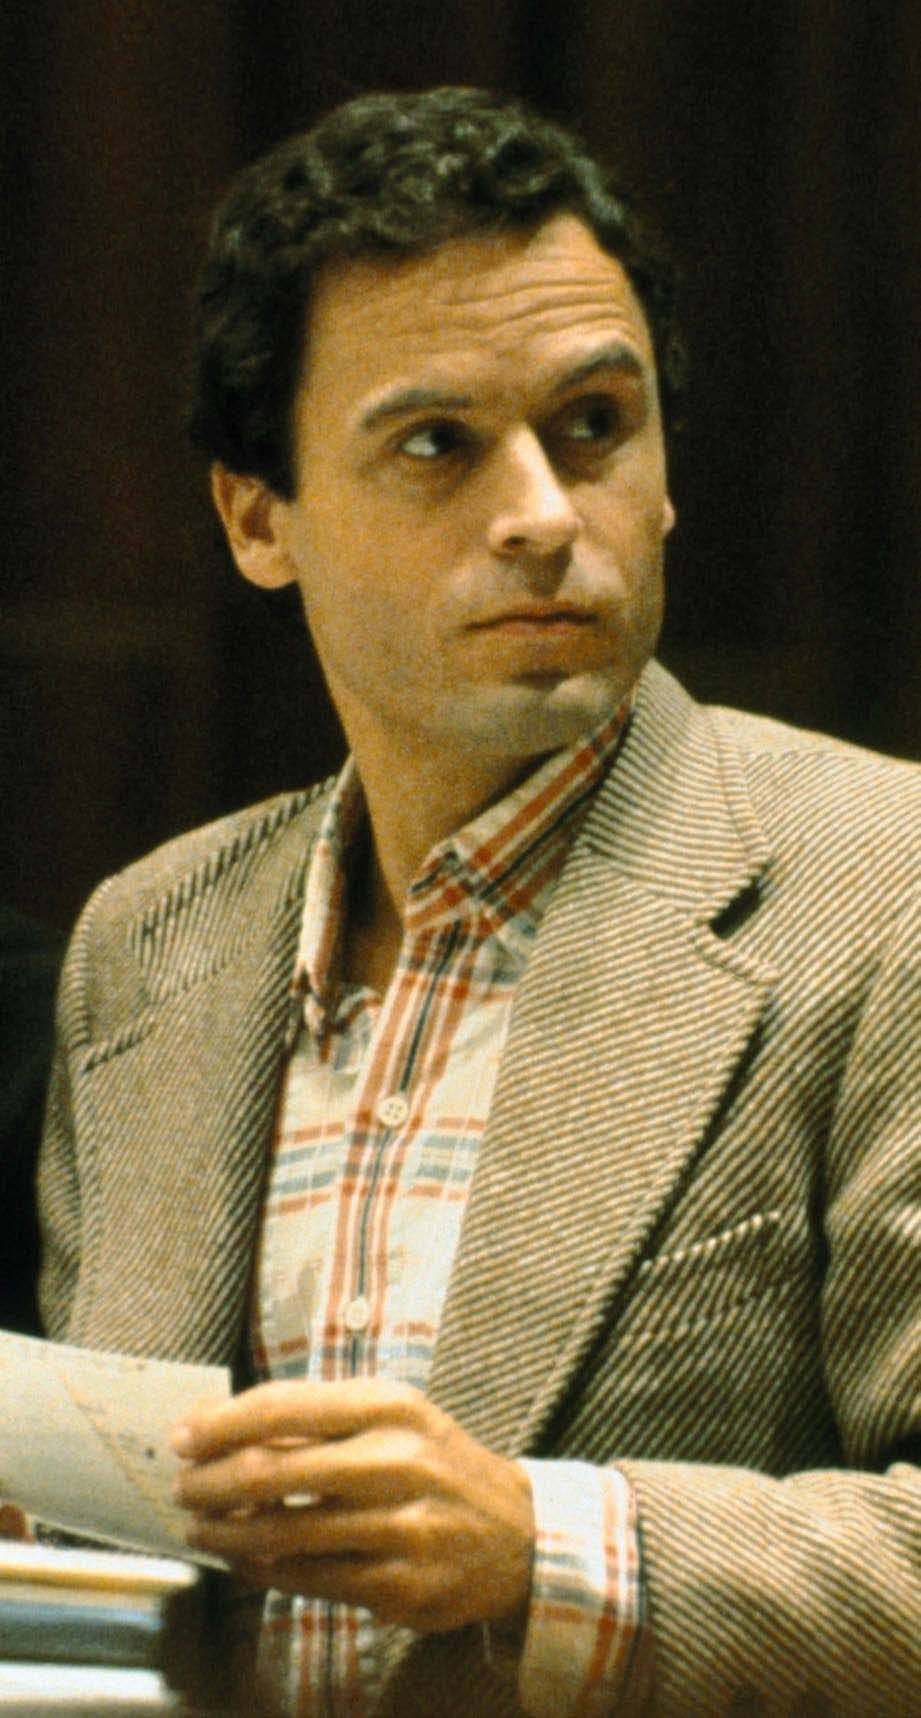 MY LIFE WITH TED BUNDY